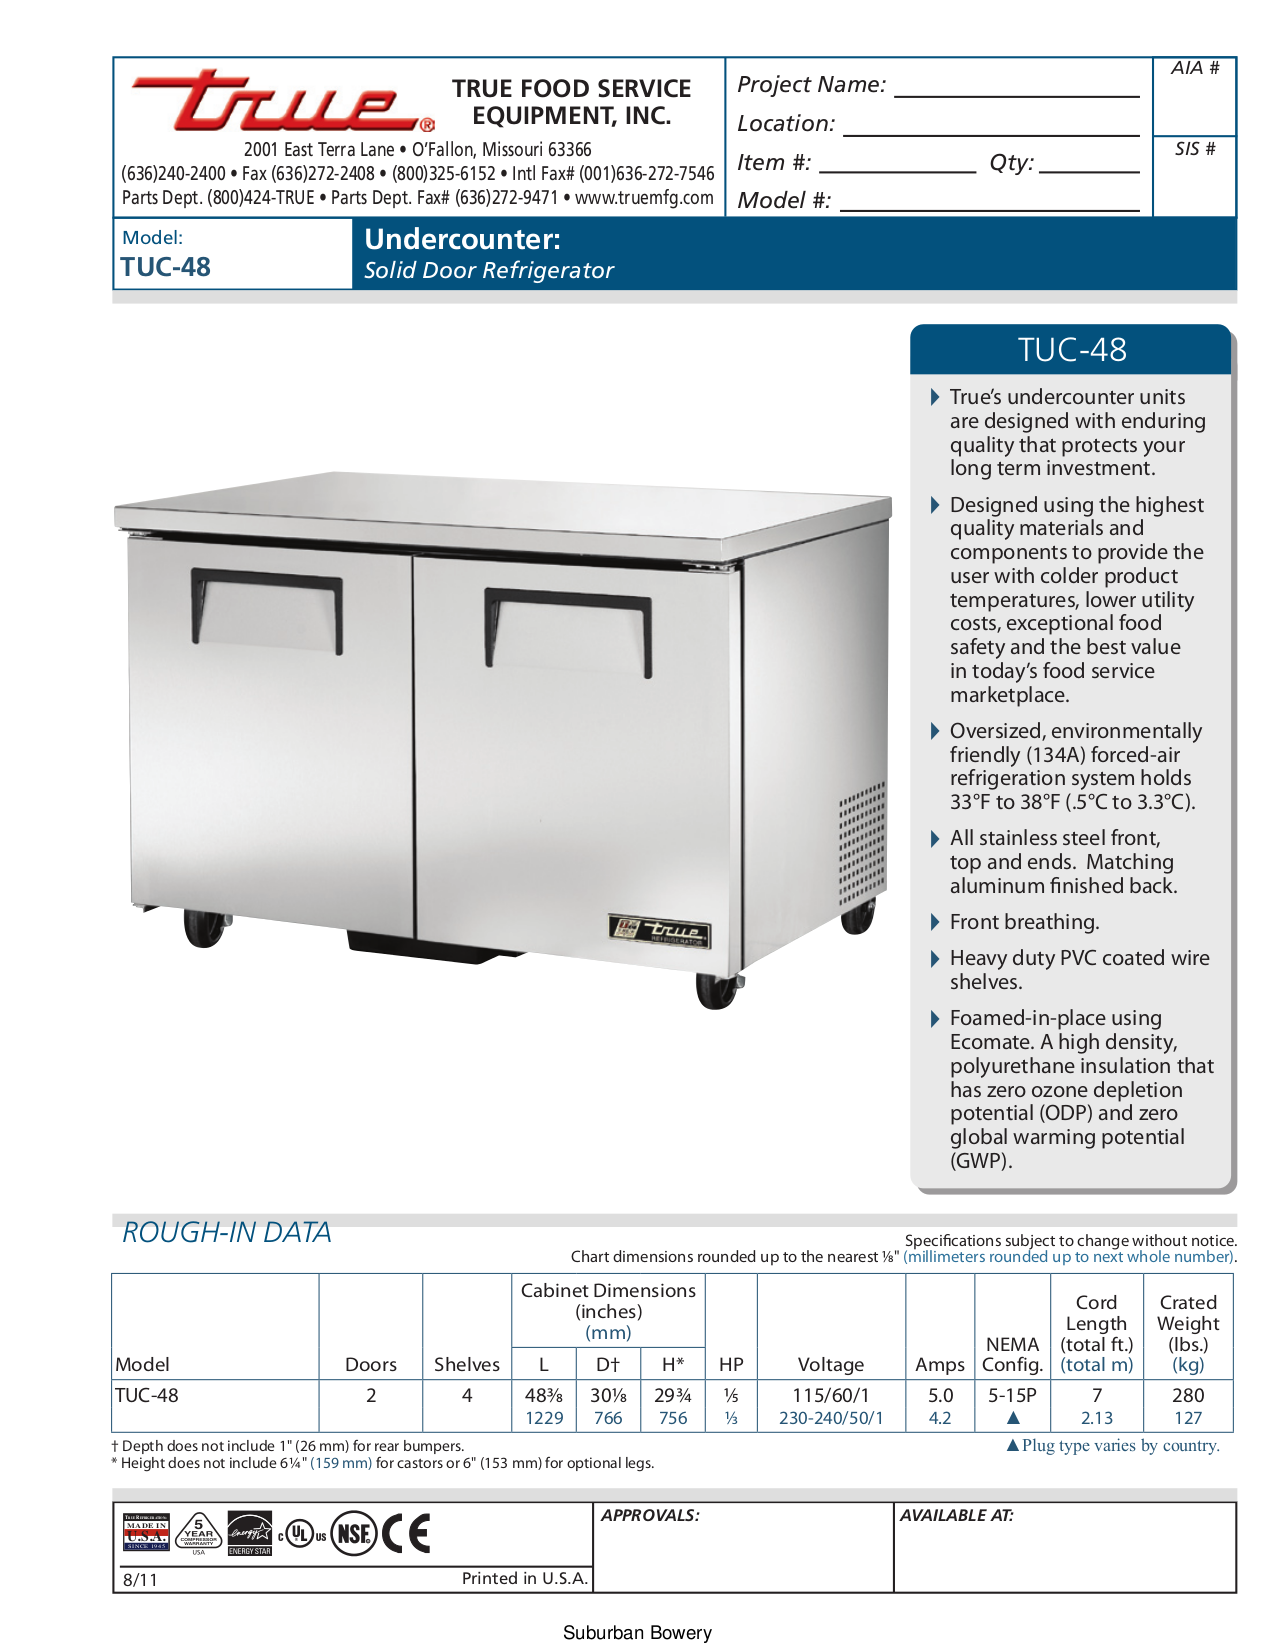 Download Free Pdf For True Tuc 48 Refrigerator Manual